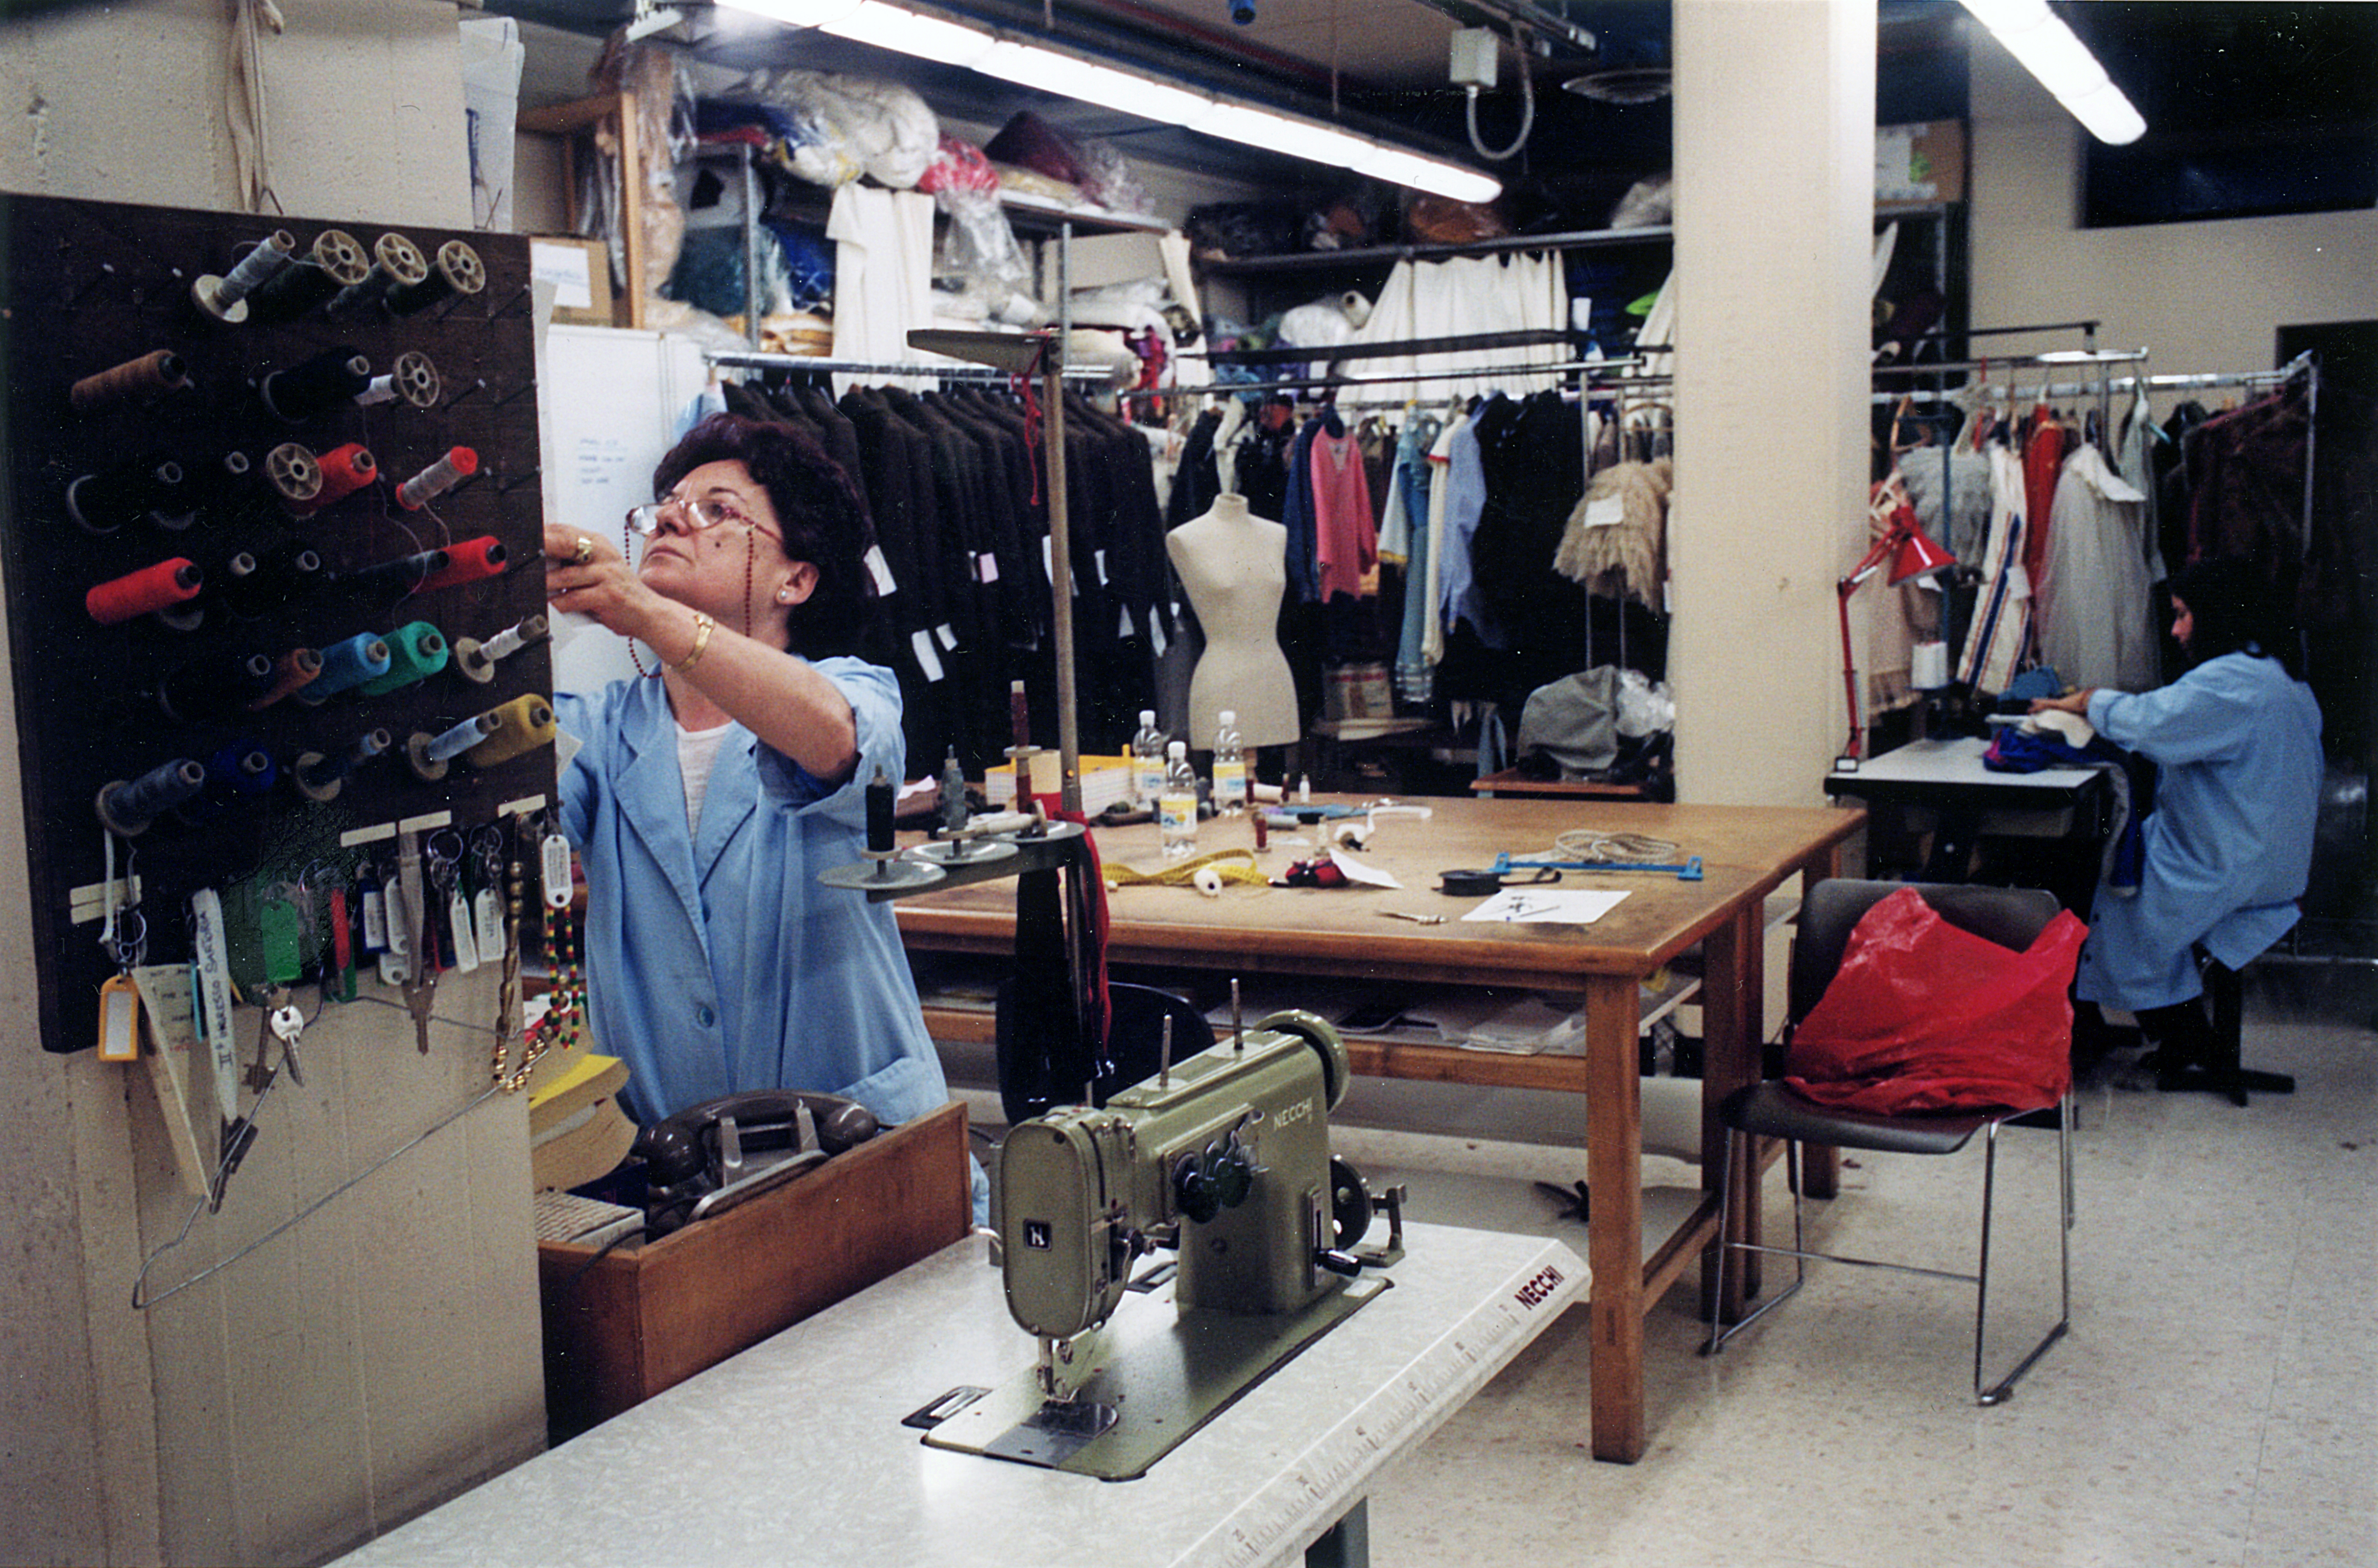 A view of the costume workshop in the midst of reels, sewing machines and clothes hangers